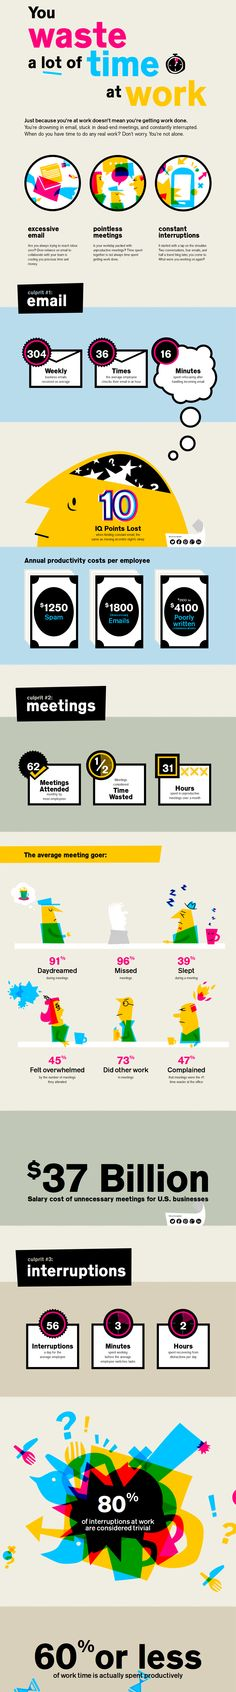 You Waste A Lot Of Time At Work | Ironic to find this Infographic after a 2h37m conference call with a client